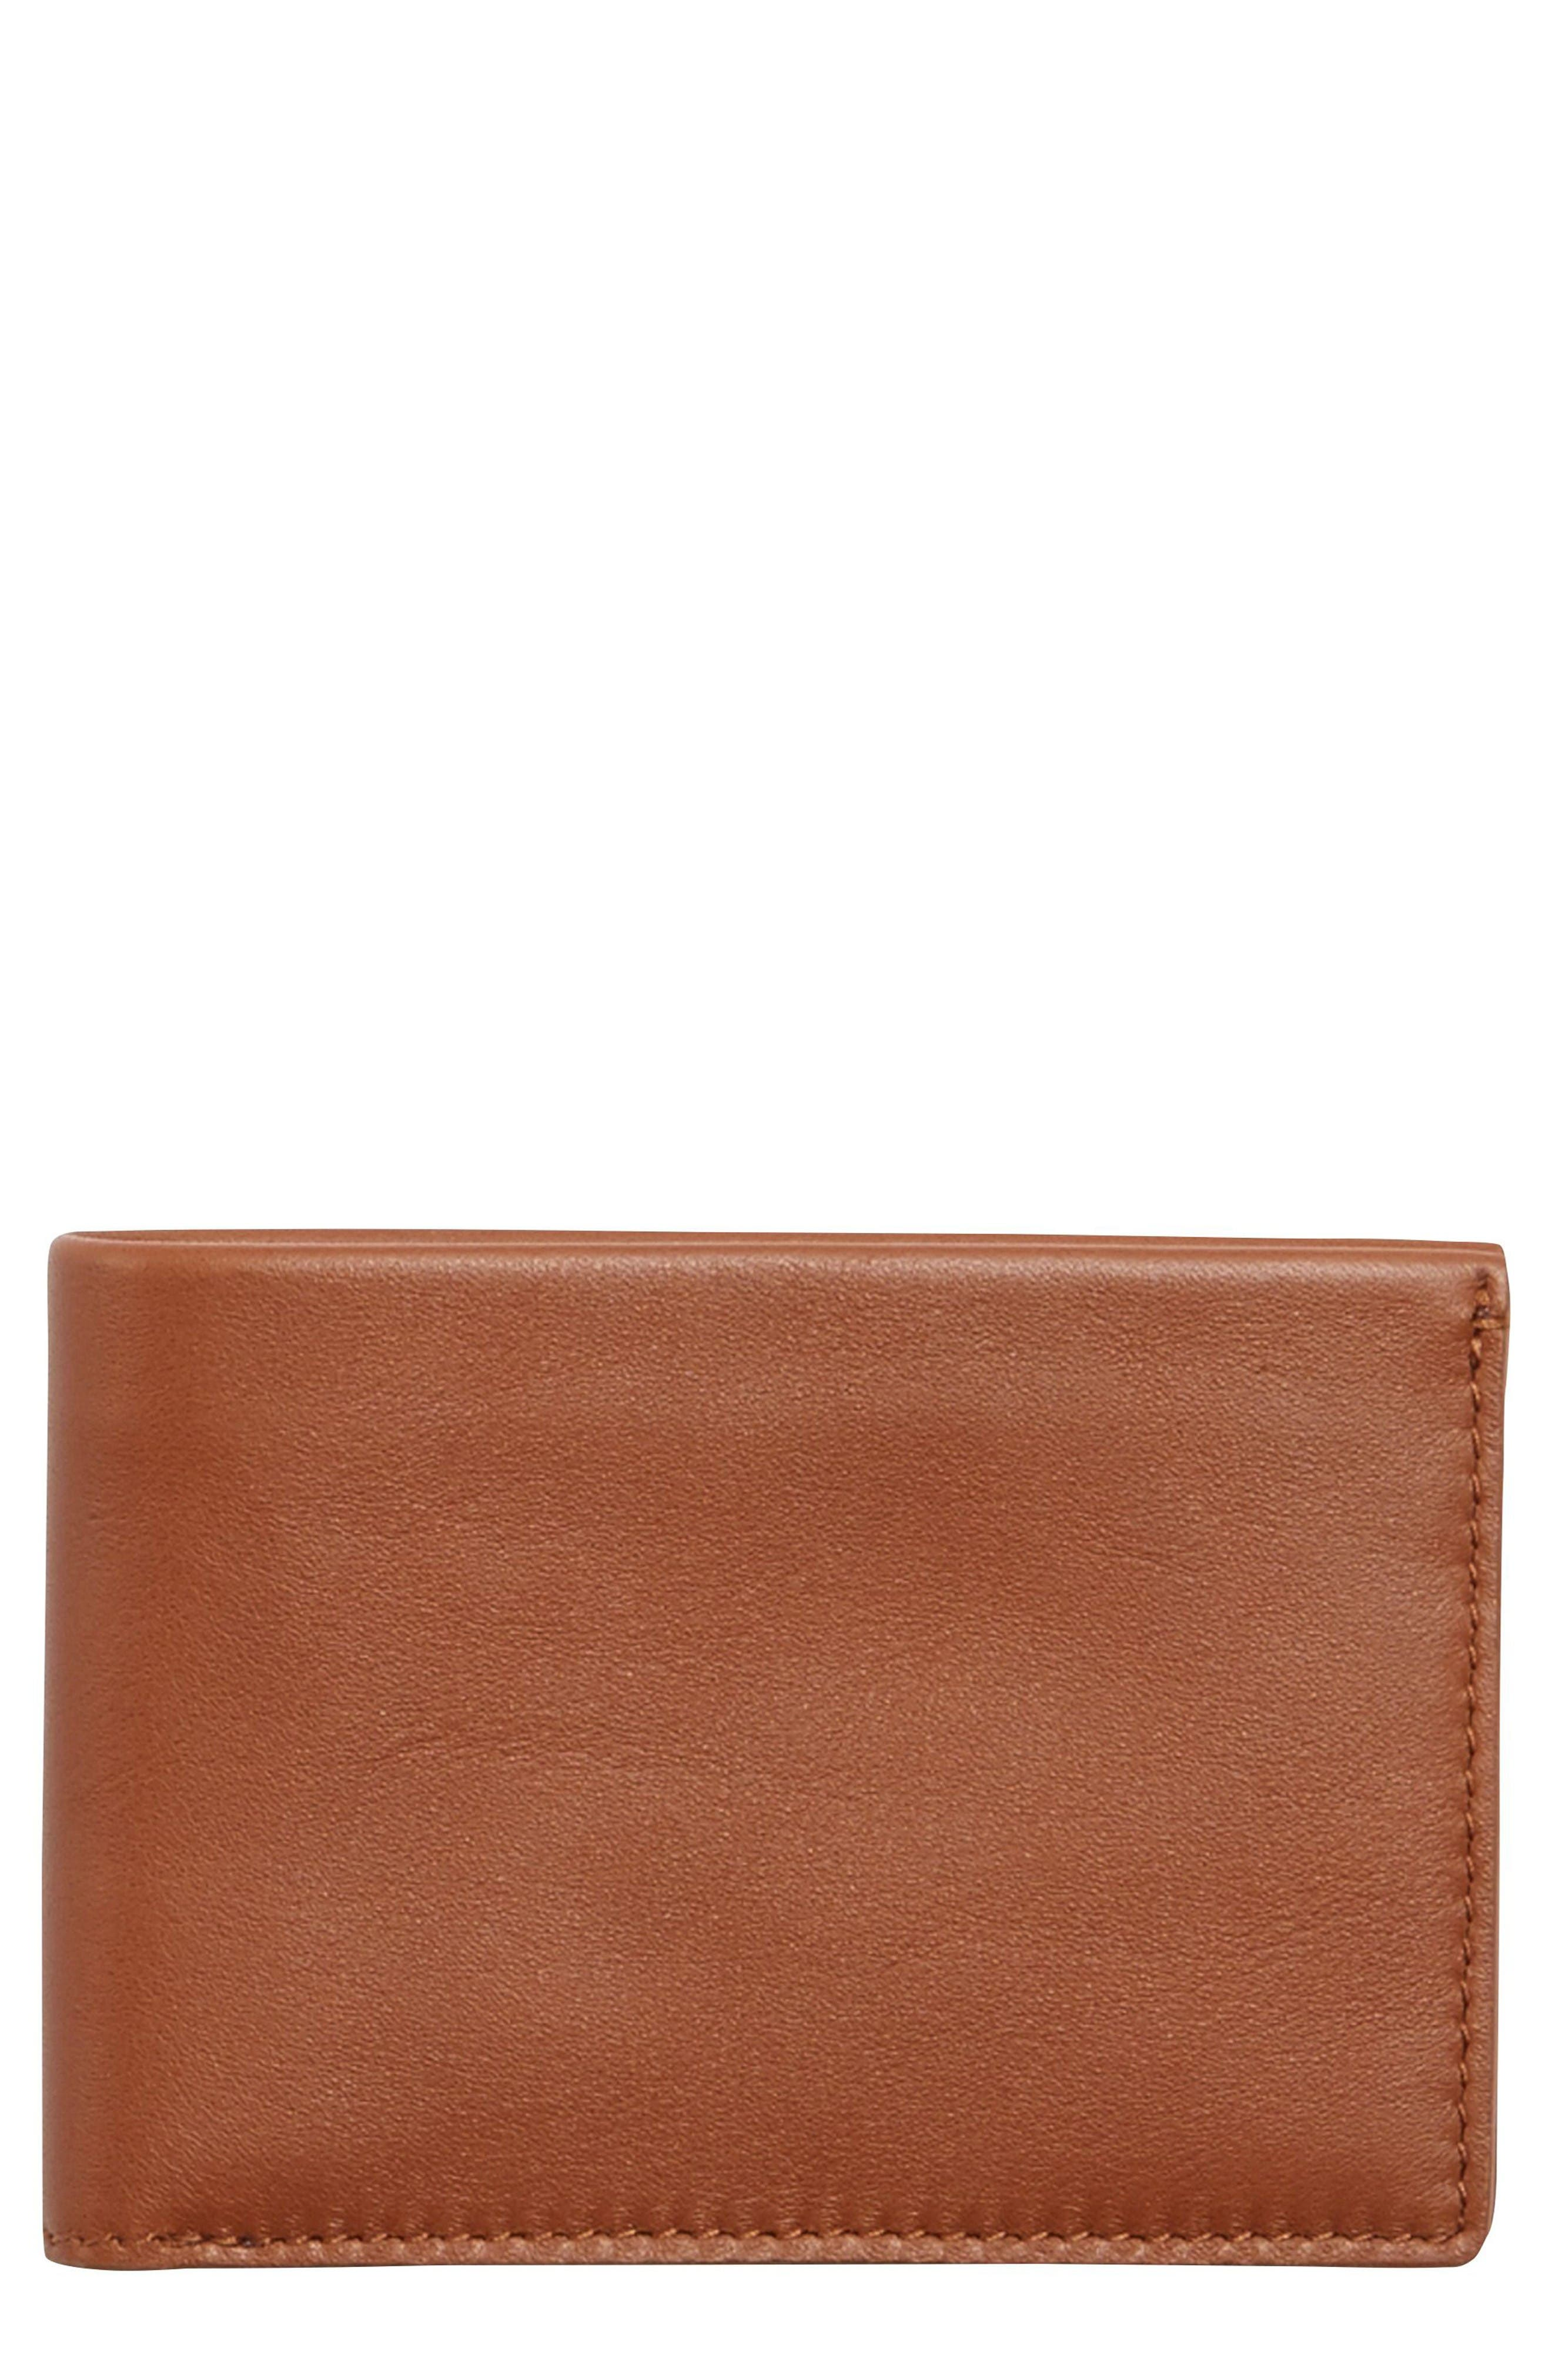 Alternate Image 1 Selected - Skagen Leather Wallet